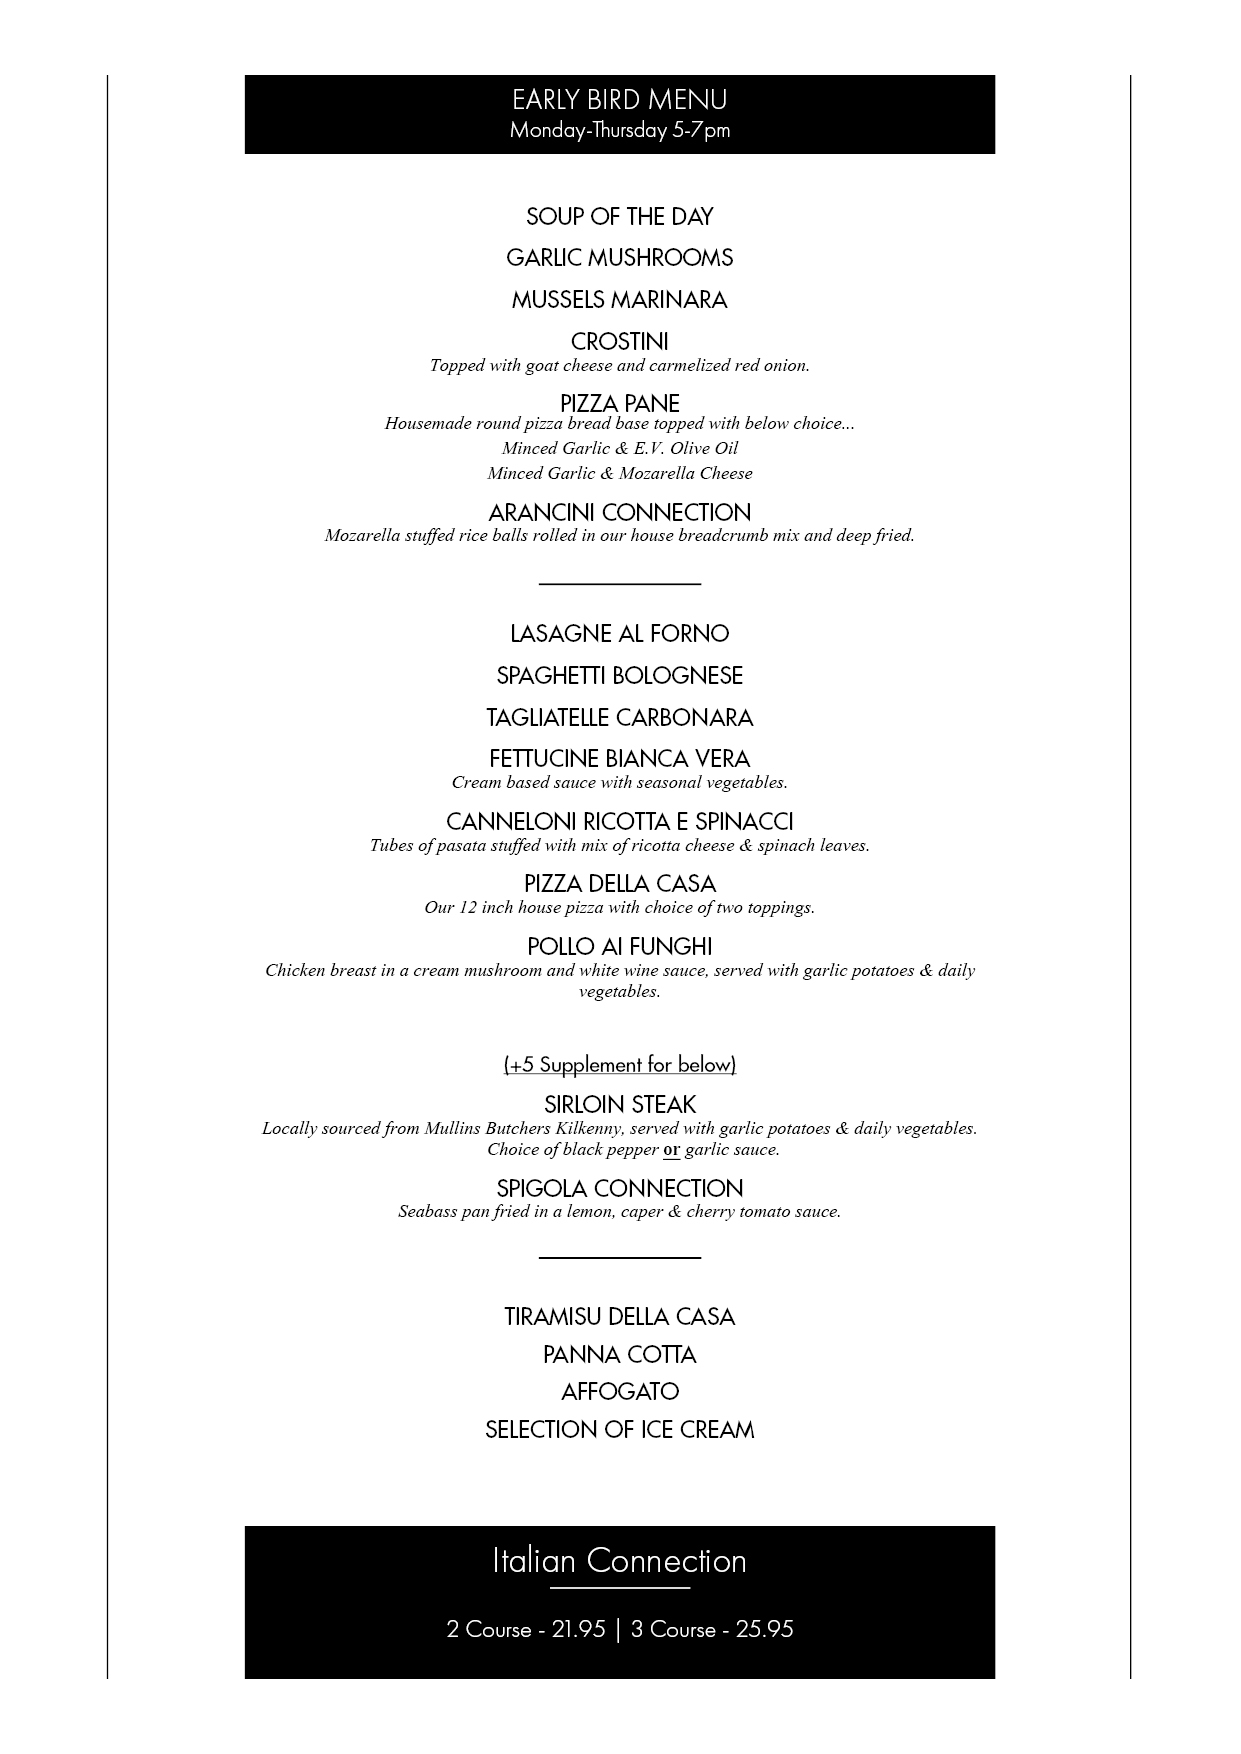 Early Bird Menu 2019.jpg